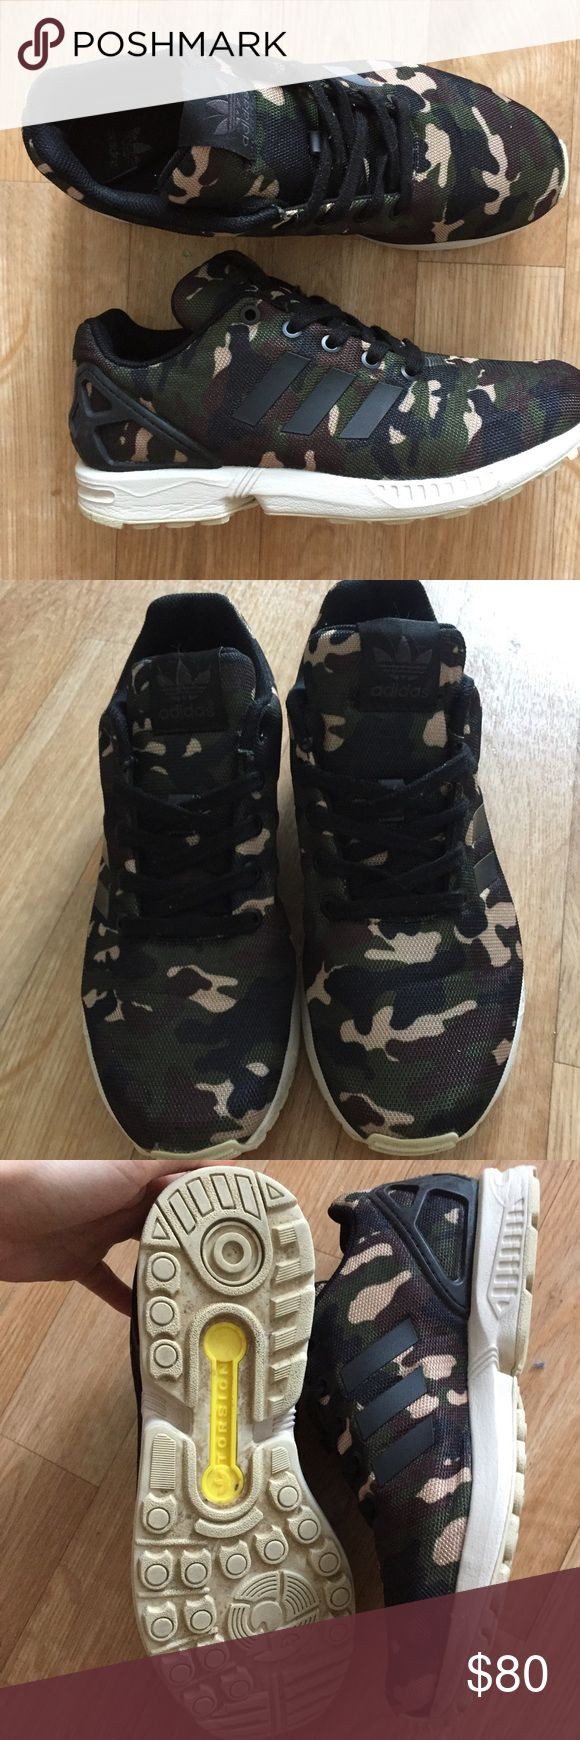 Rare camo Adidas ✨ Camo ZX Flux adidas women's size 8 or youth 6 1/2. I love these but adidas run large so they're too big for me ☹️ only worn a few times and just washed. Adidas Shoes Sneakers